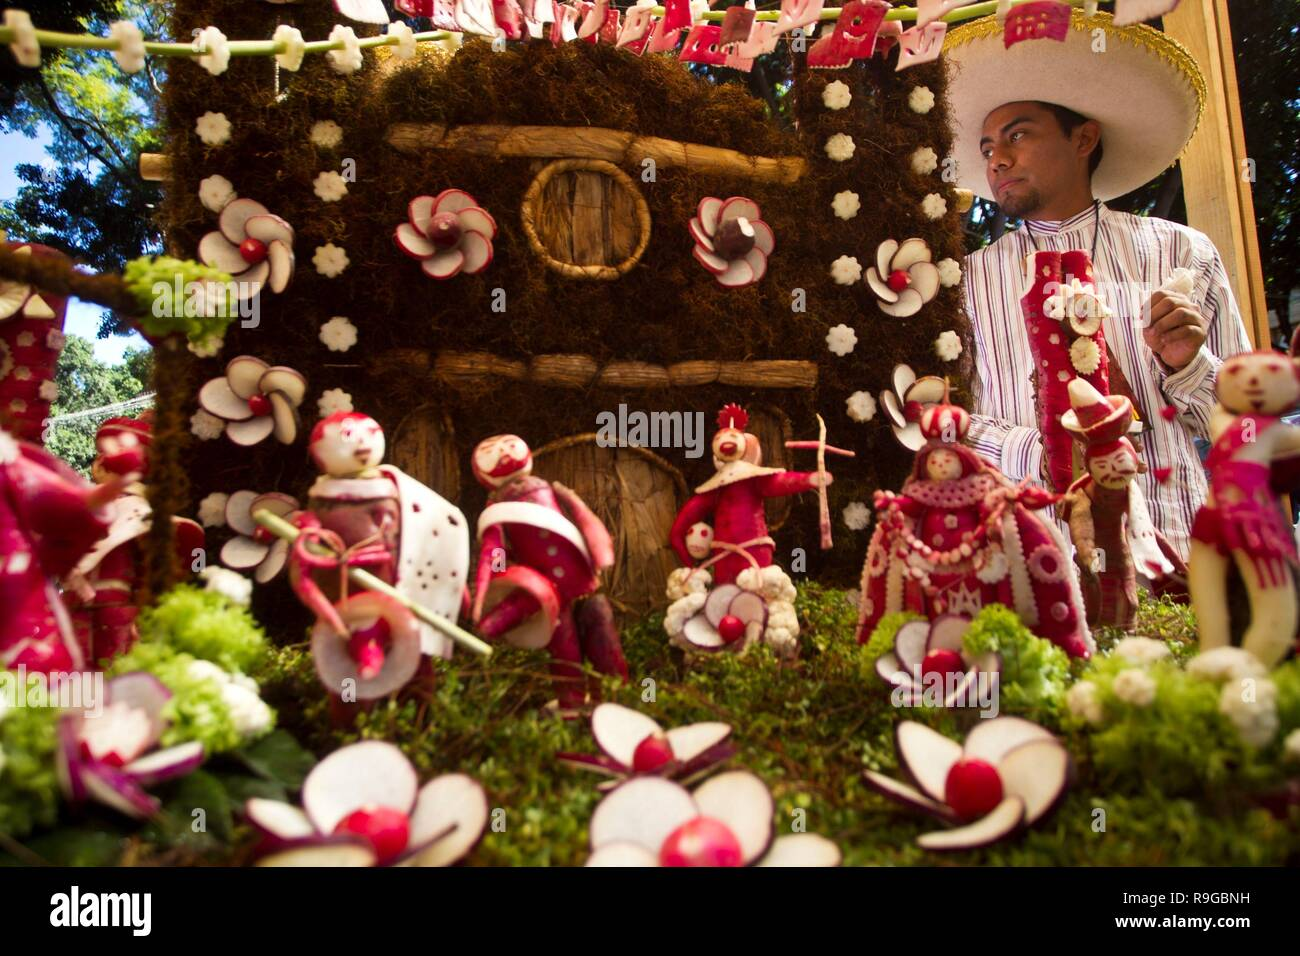 View of figures made with radishes in the state of Oaxaca, Mexico, 23 December 2018. Artisans carve and mold figures made with tubers to expose them in the traditional Night of Radishes, which has been held for 121 years in the city of Oaxaca, in southern Mexico. This peculiar custom started in 1897 when a contest was established where horticulturists and floriculturists brought their products. The craftsmen take advantage of the different forms that the tubers adopt to elaborate pieces that represent Christmas scenes, illustrious personages, dances, and a varied type of representations dictat - Stock Image